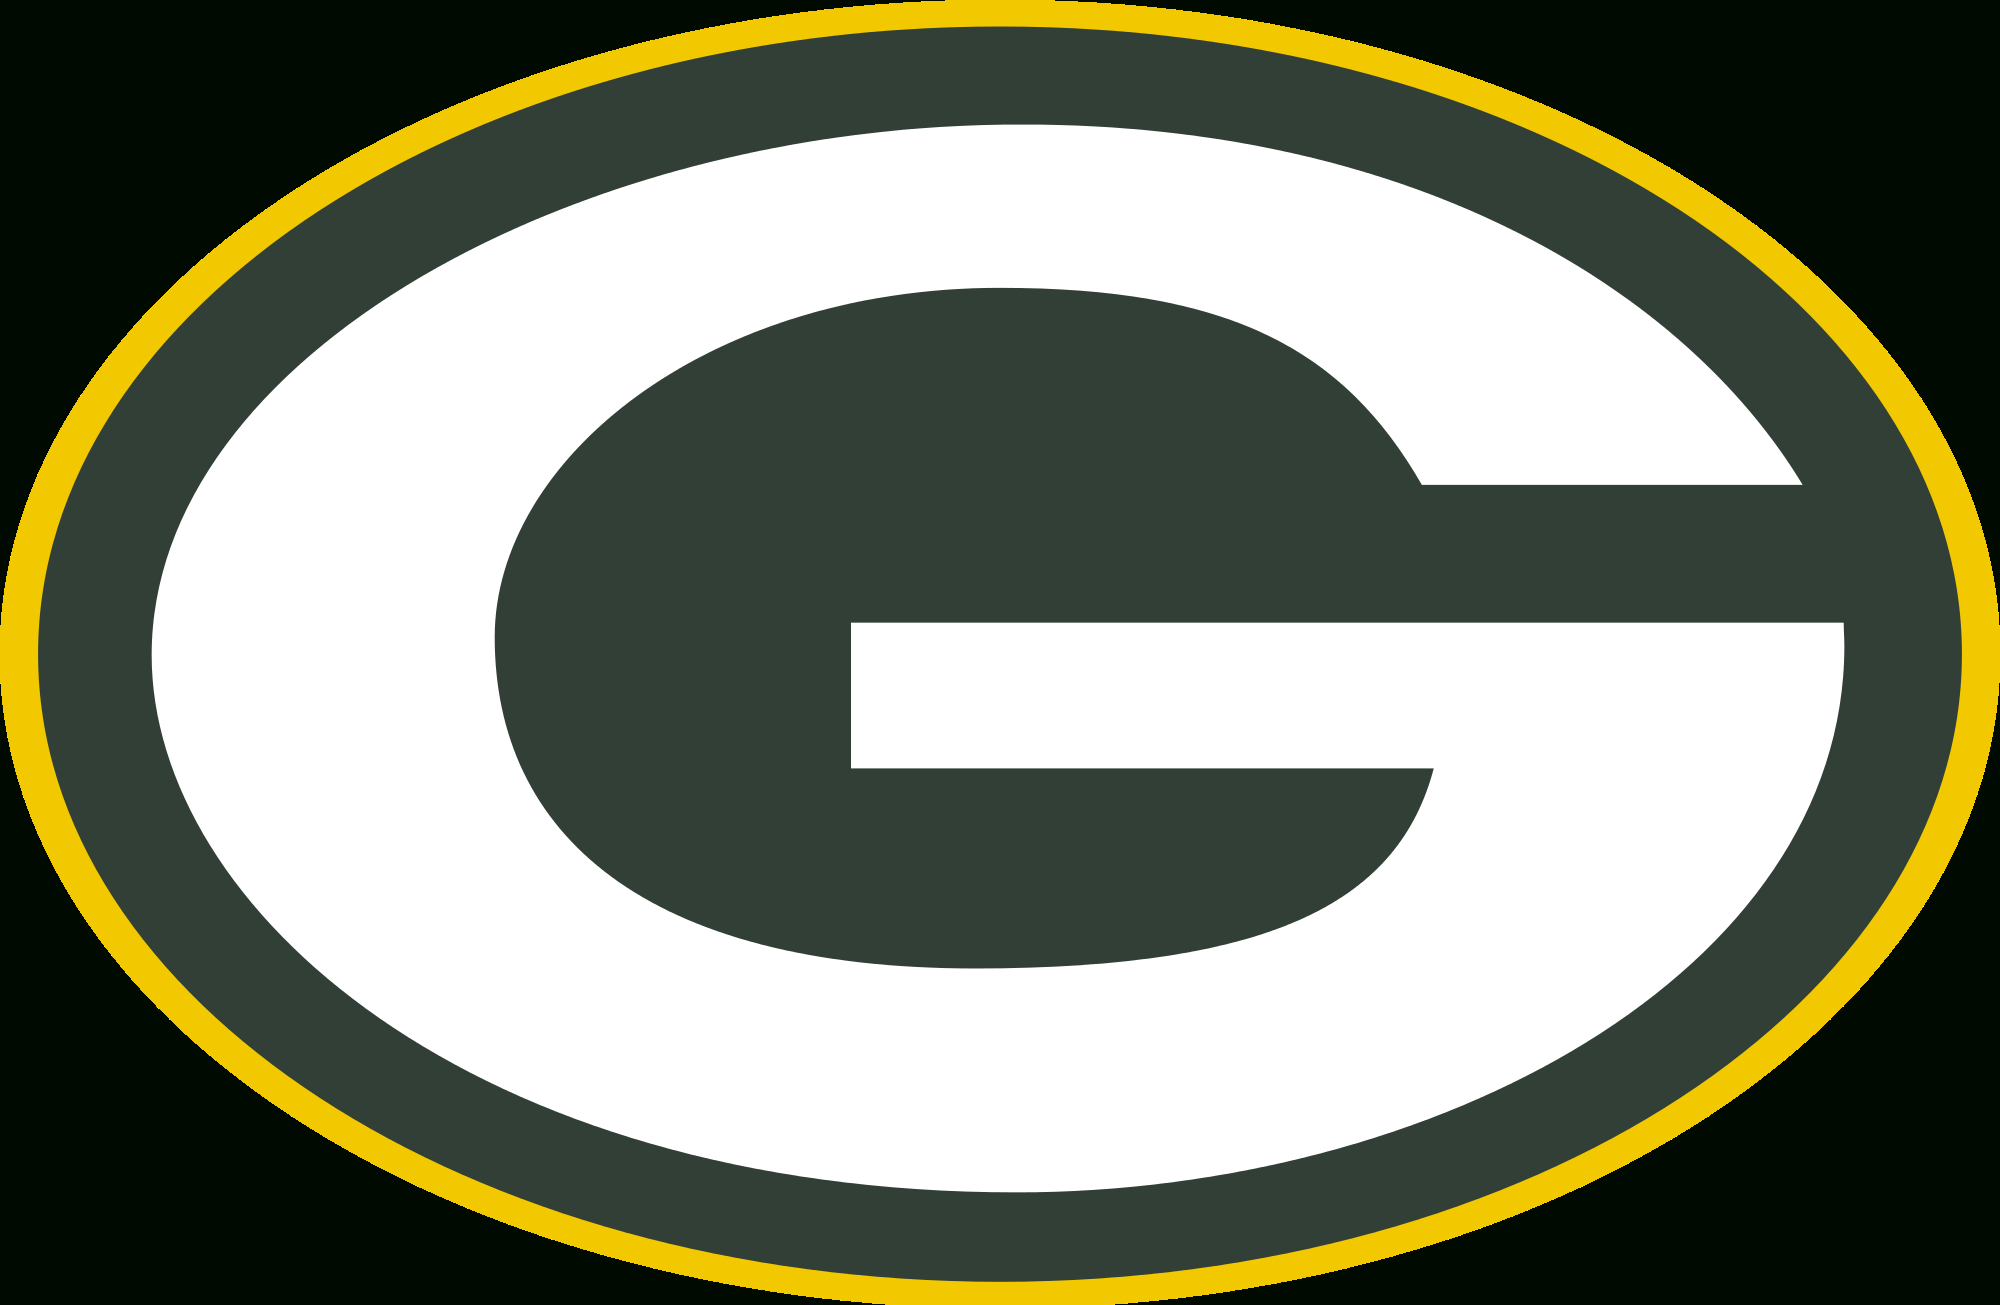 Free Packers Symbol Picture, Download Free Clip Art, Free Clip Art - Free Printable Green Bay Packers Logo